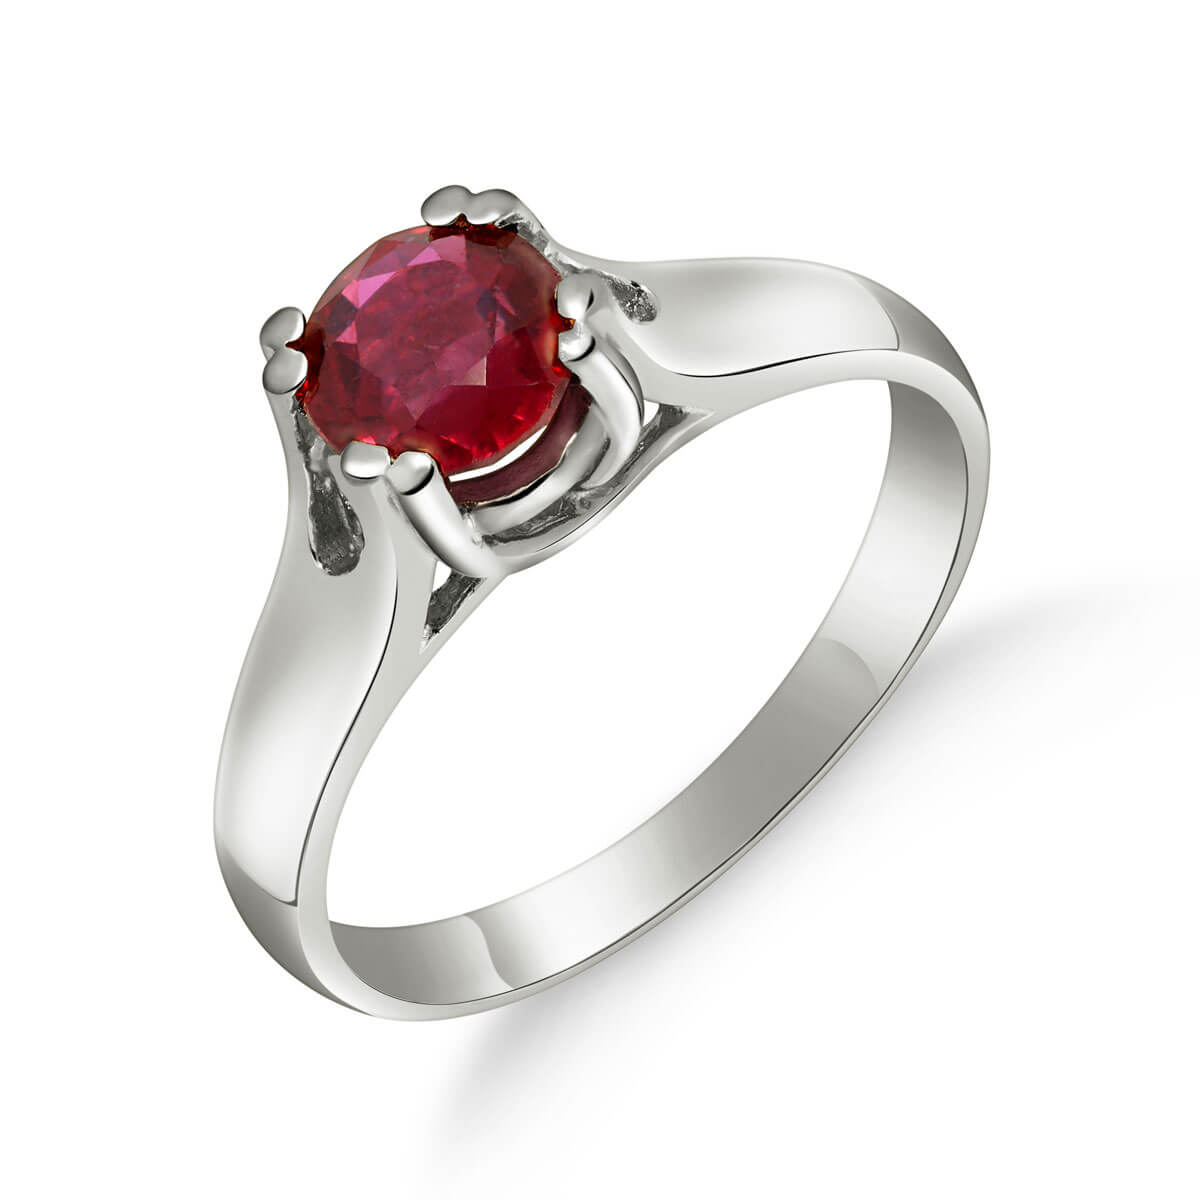 Ruby Solitaire Ring 1.35 ct in 18ct White Gold